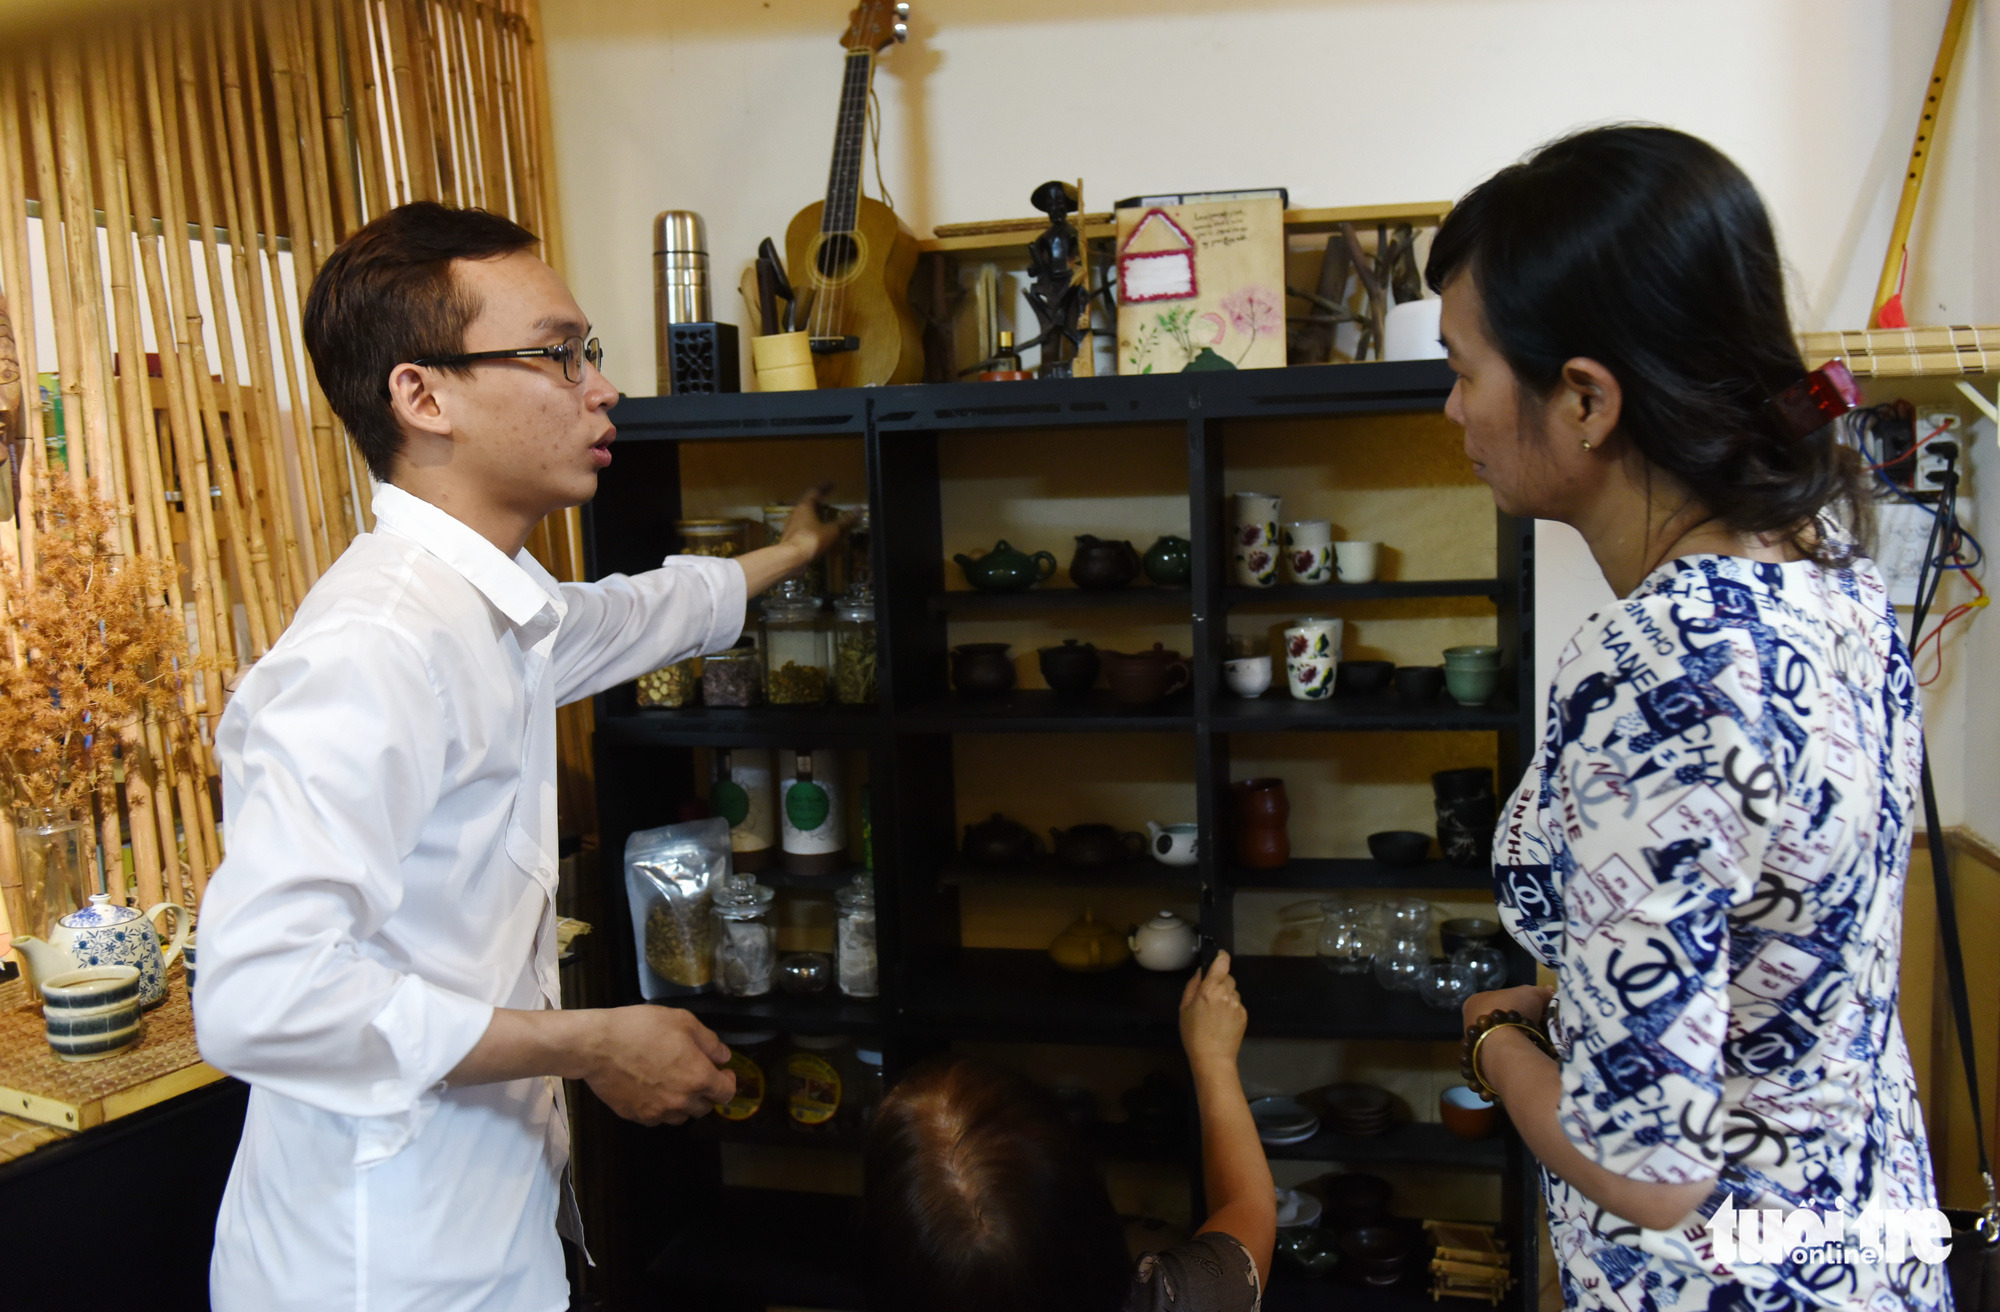 Duong Huu Thuan (left), member of the group that runs the Zentea teahouse in Ho Chi Minh City, introduces the different kinds of tea and how to brew them to a customer. Photo: Tuoi Tre